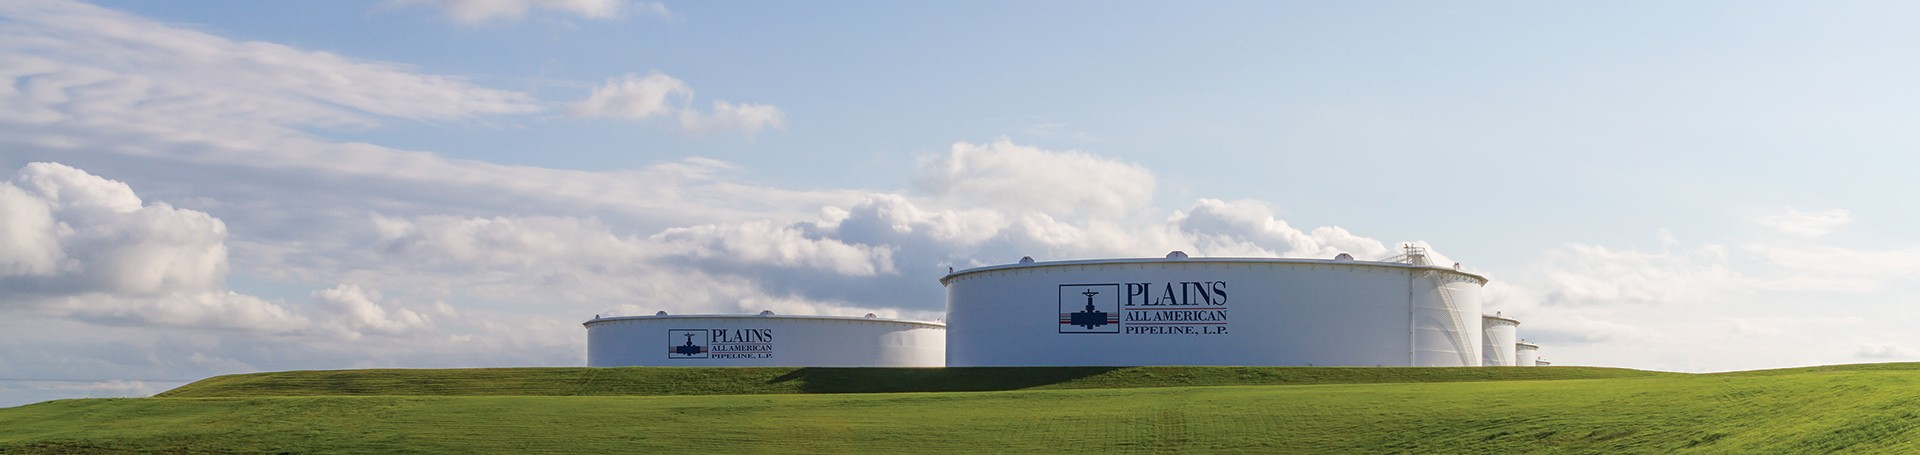 Plains gathers, terminals, and stores liquid products at various facilities.